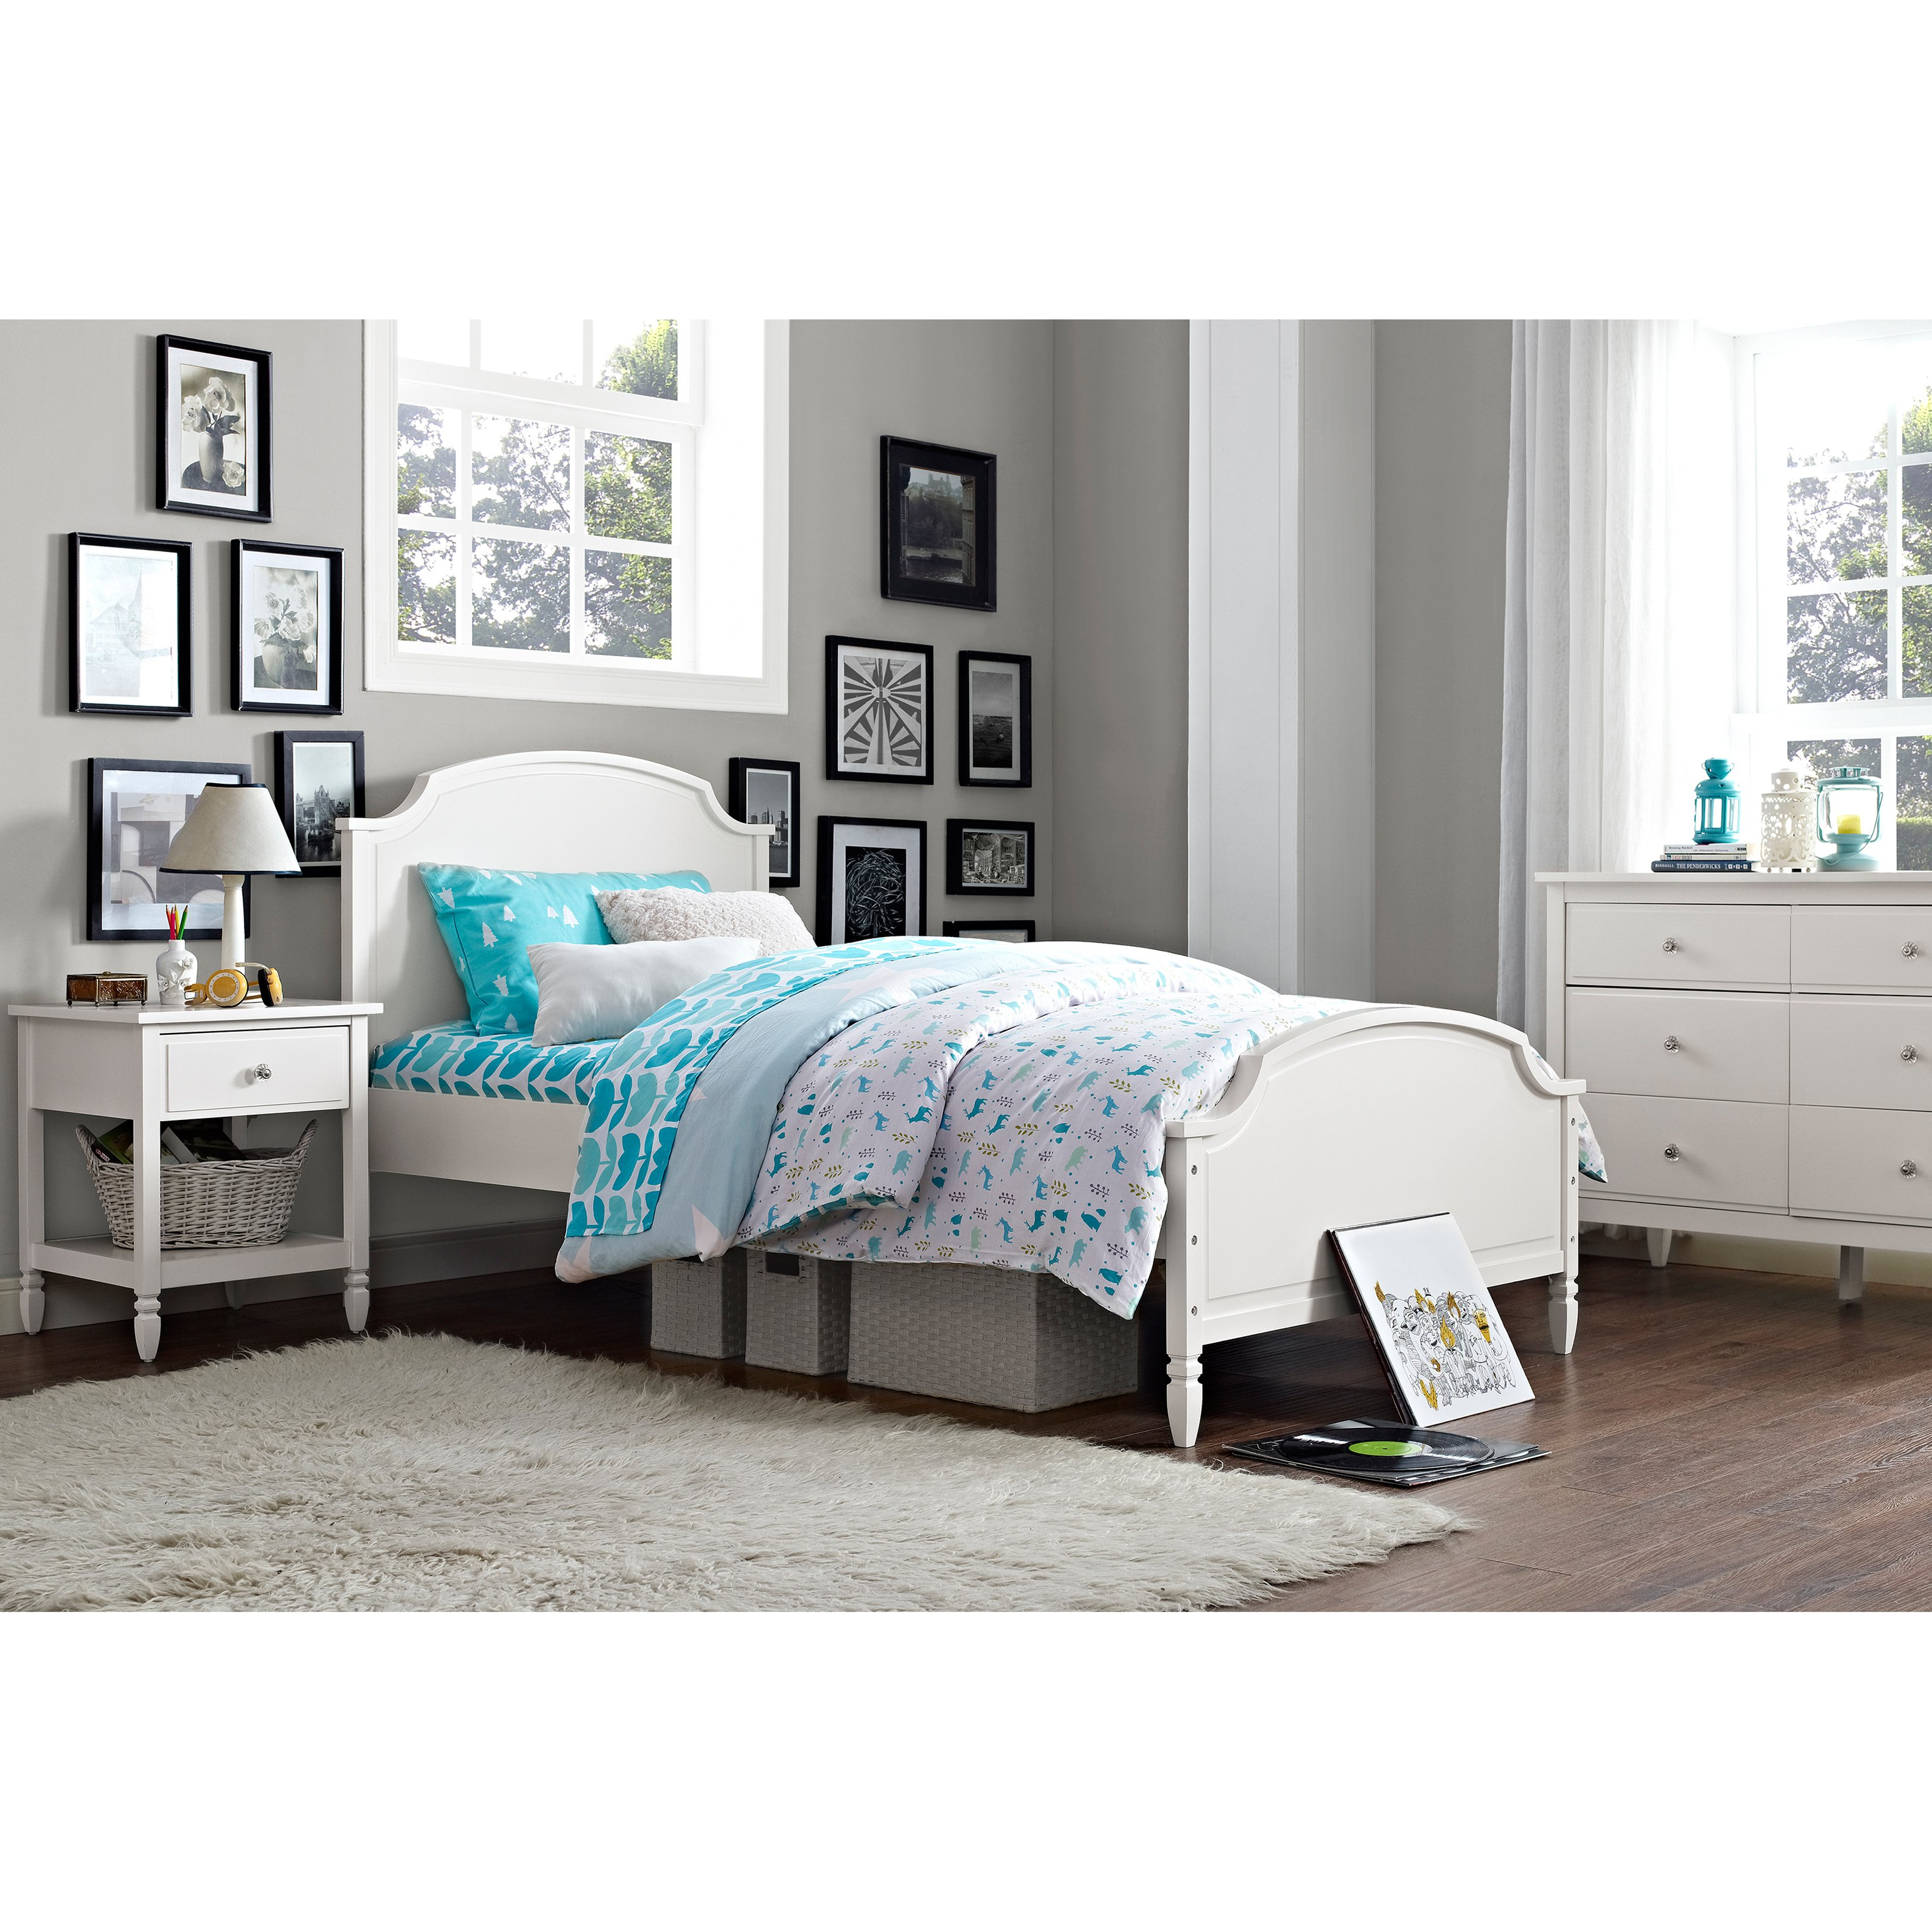 dorel asia Dorel Living Vivienne White Trundle